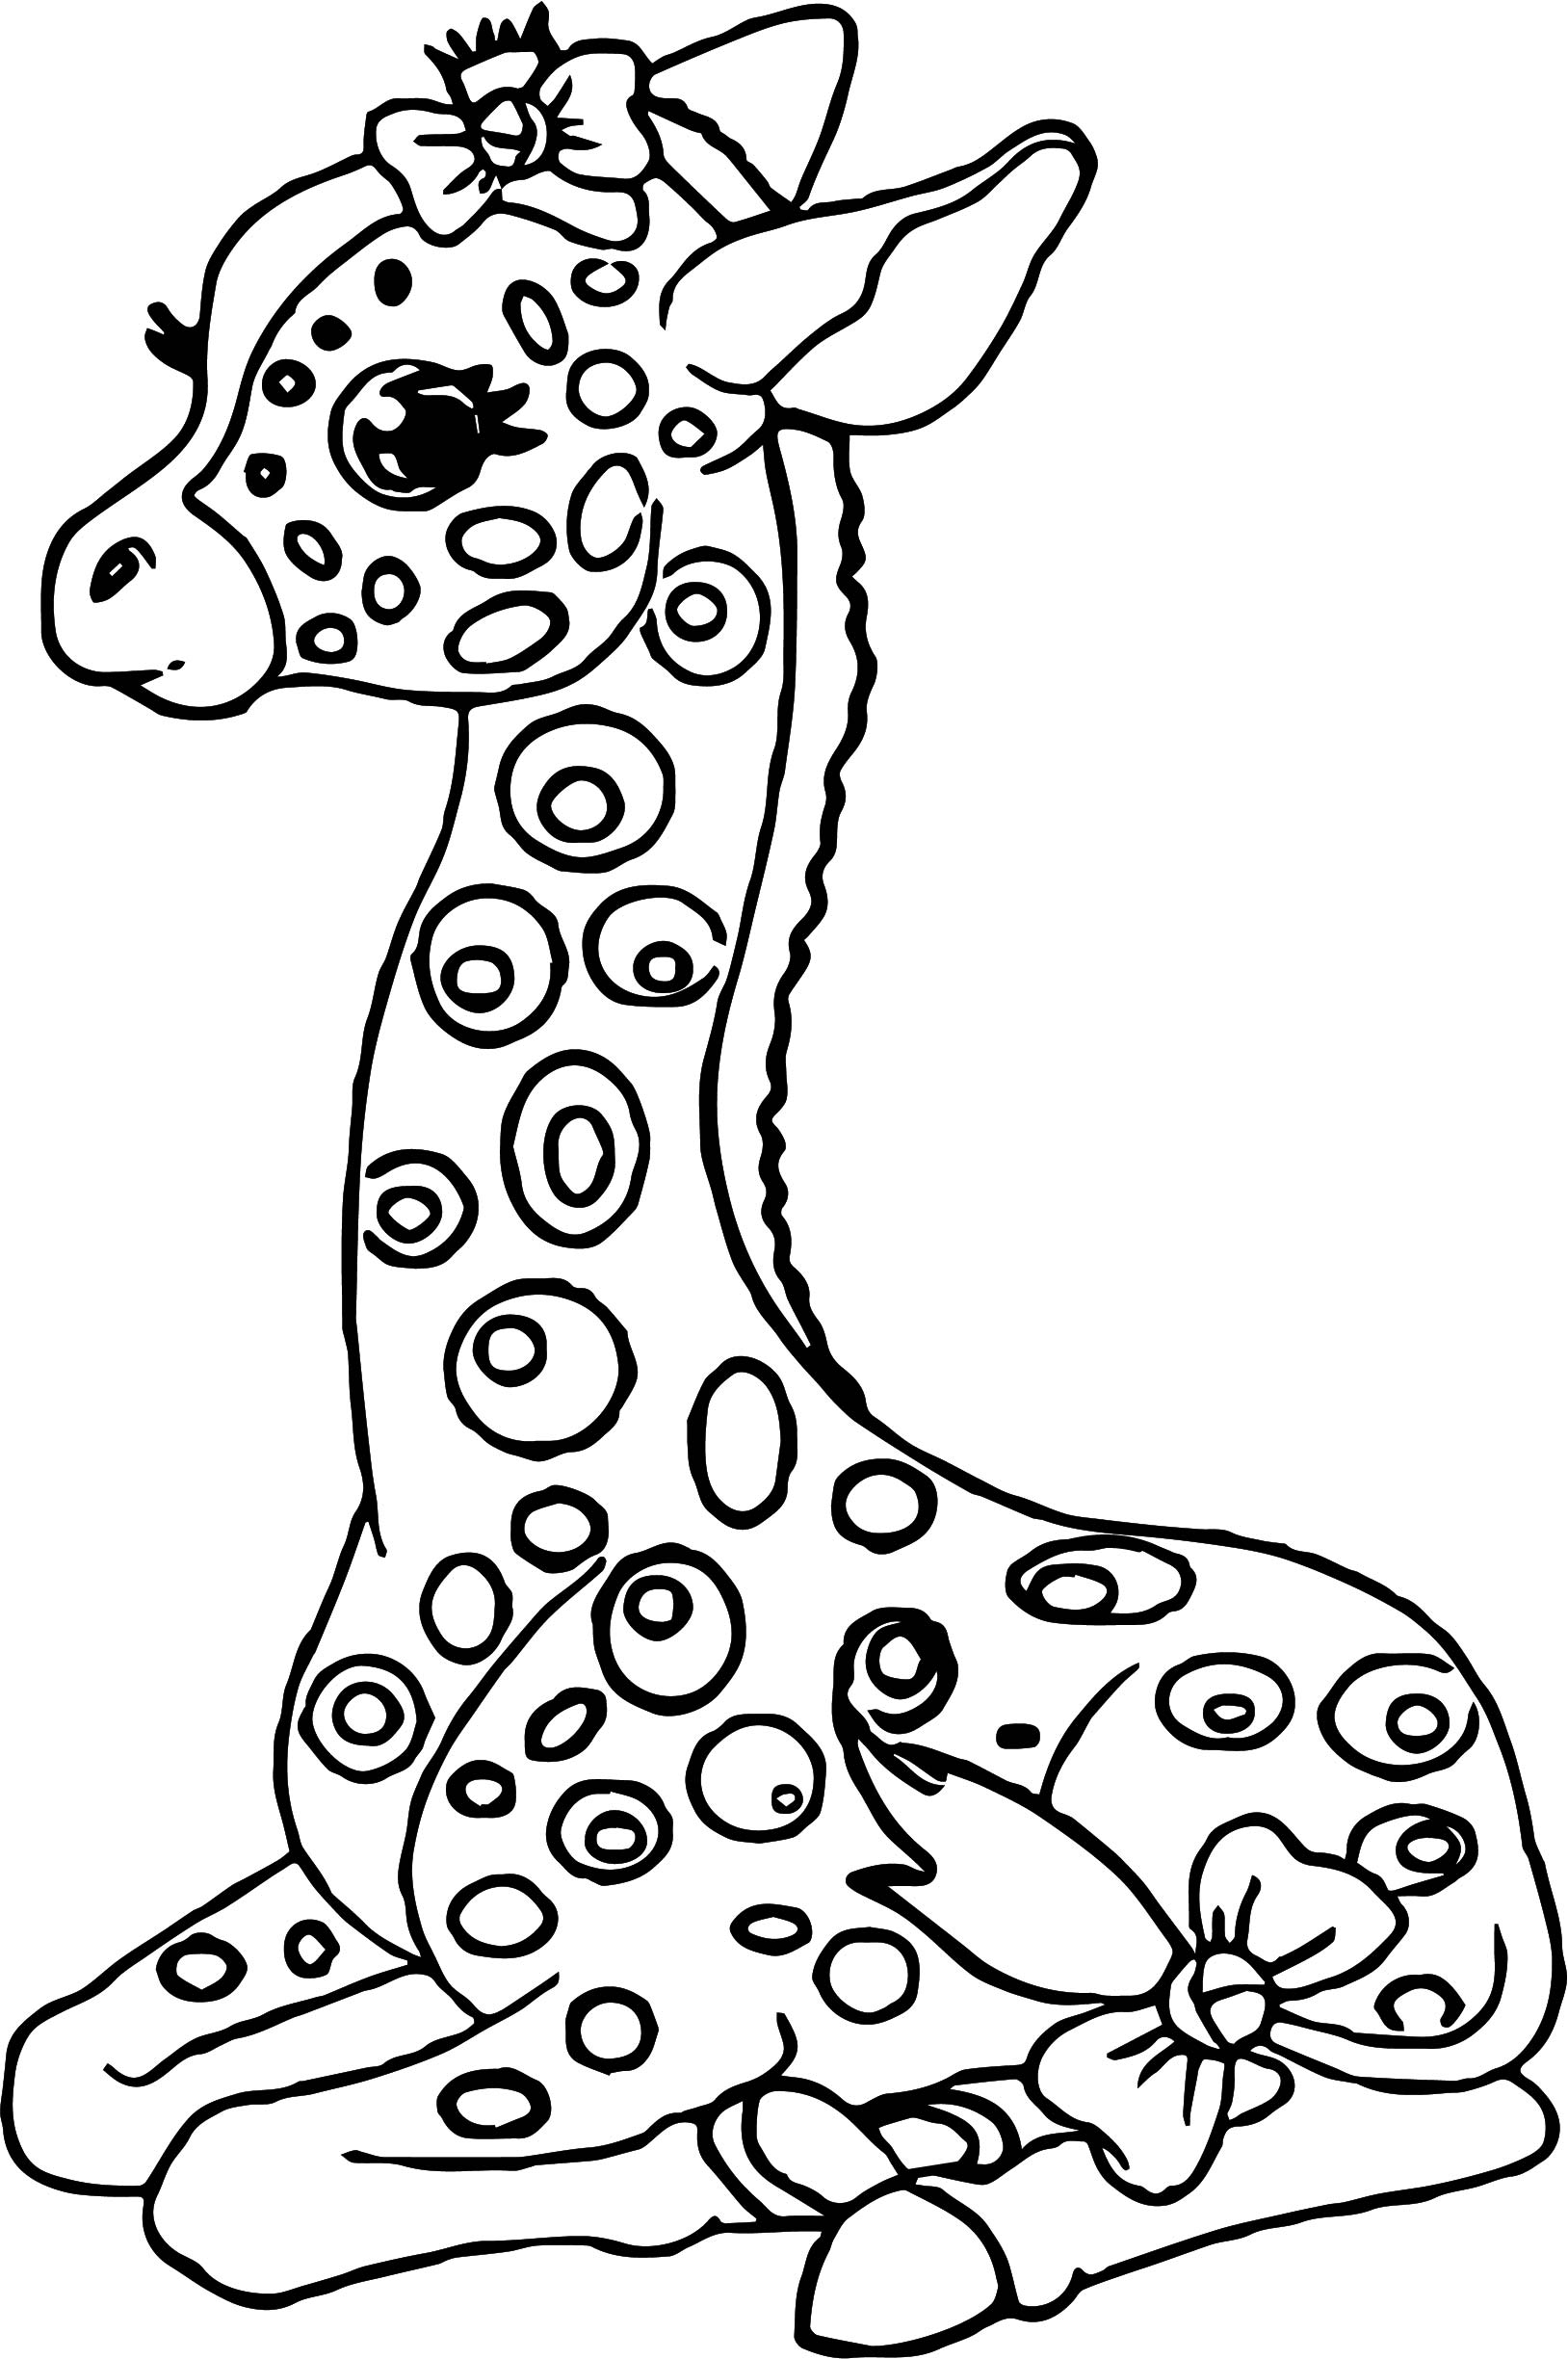 colouring pages of giraffe free printable giraffe coloring pages for kids of pages colouring giraffe